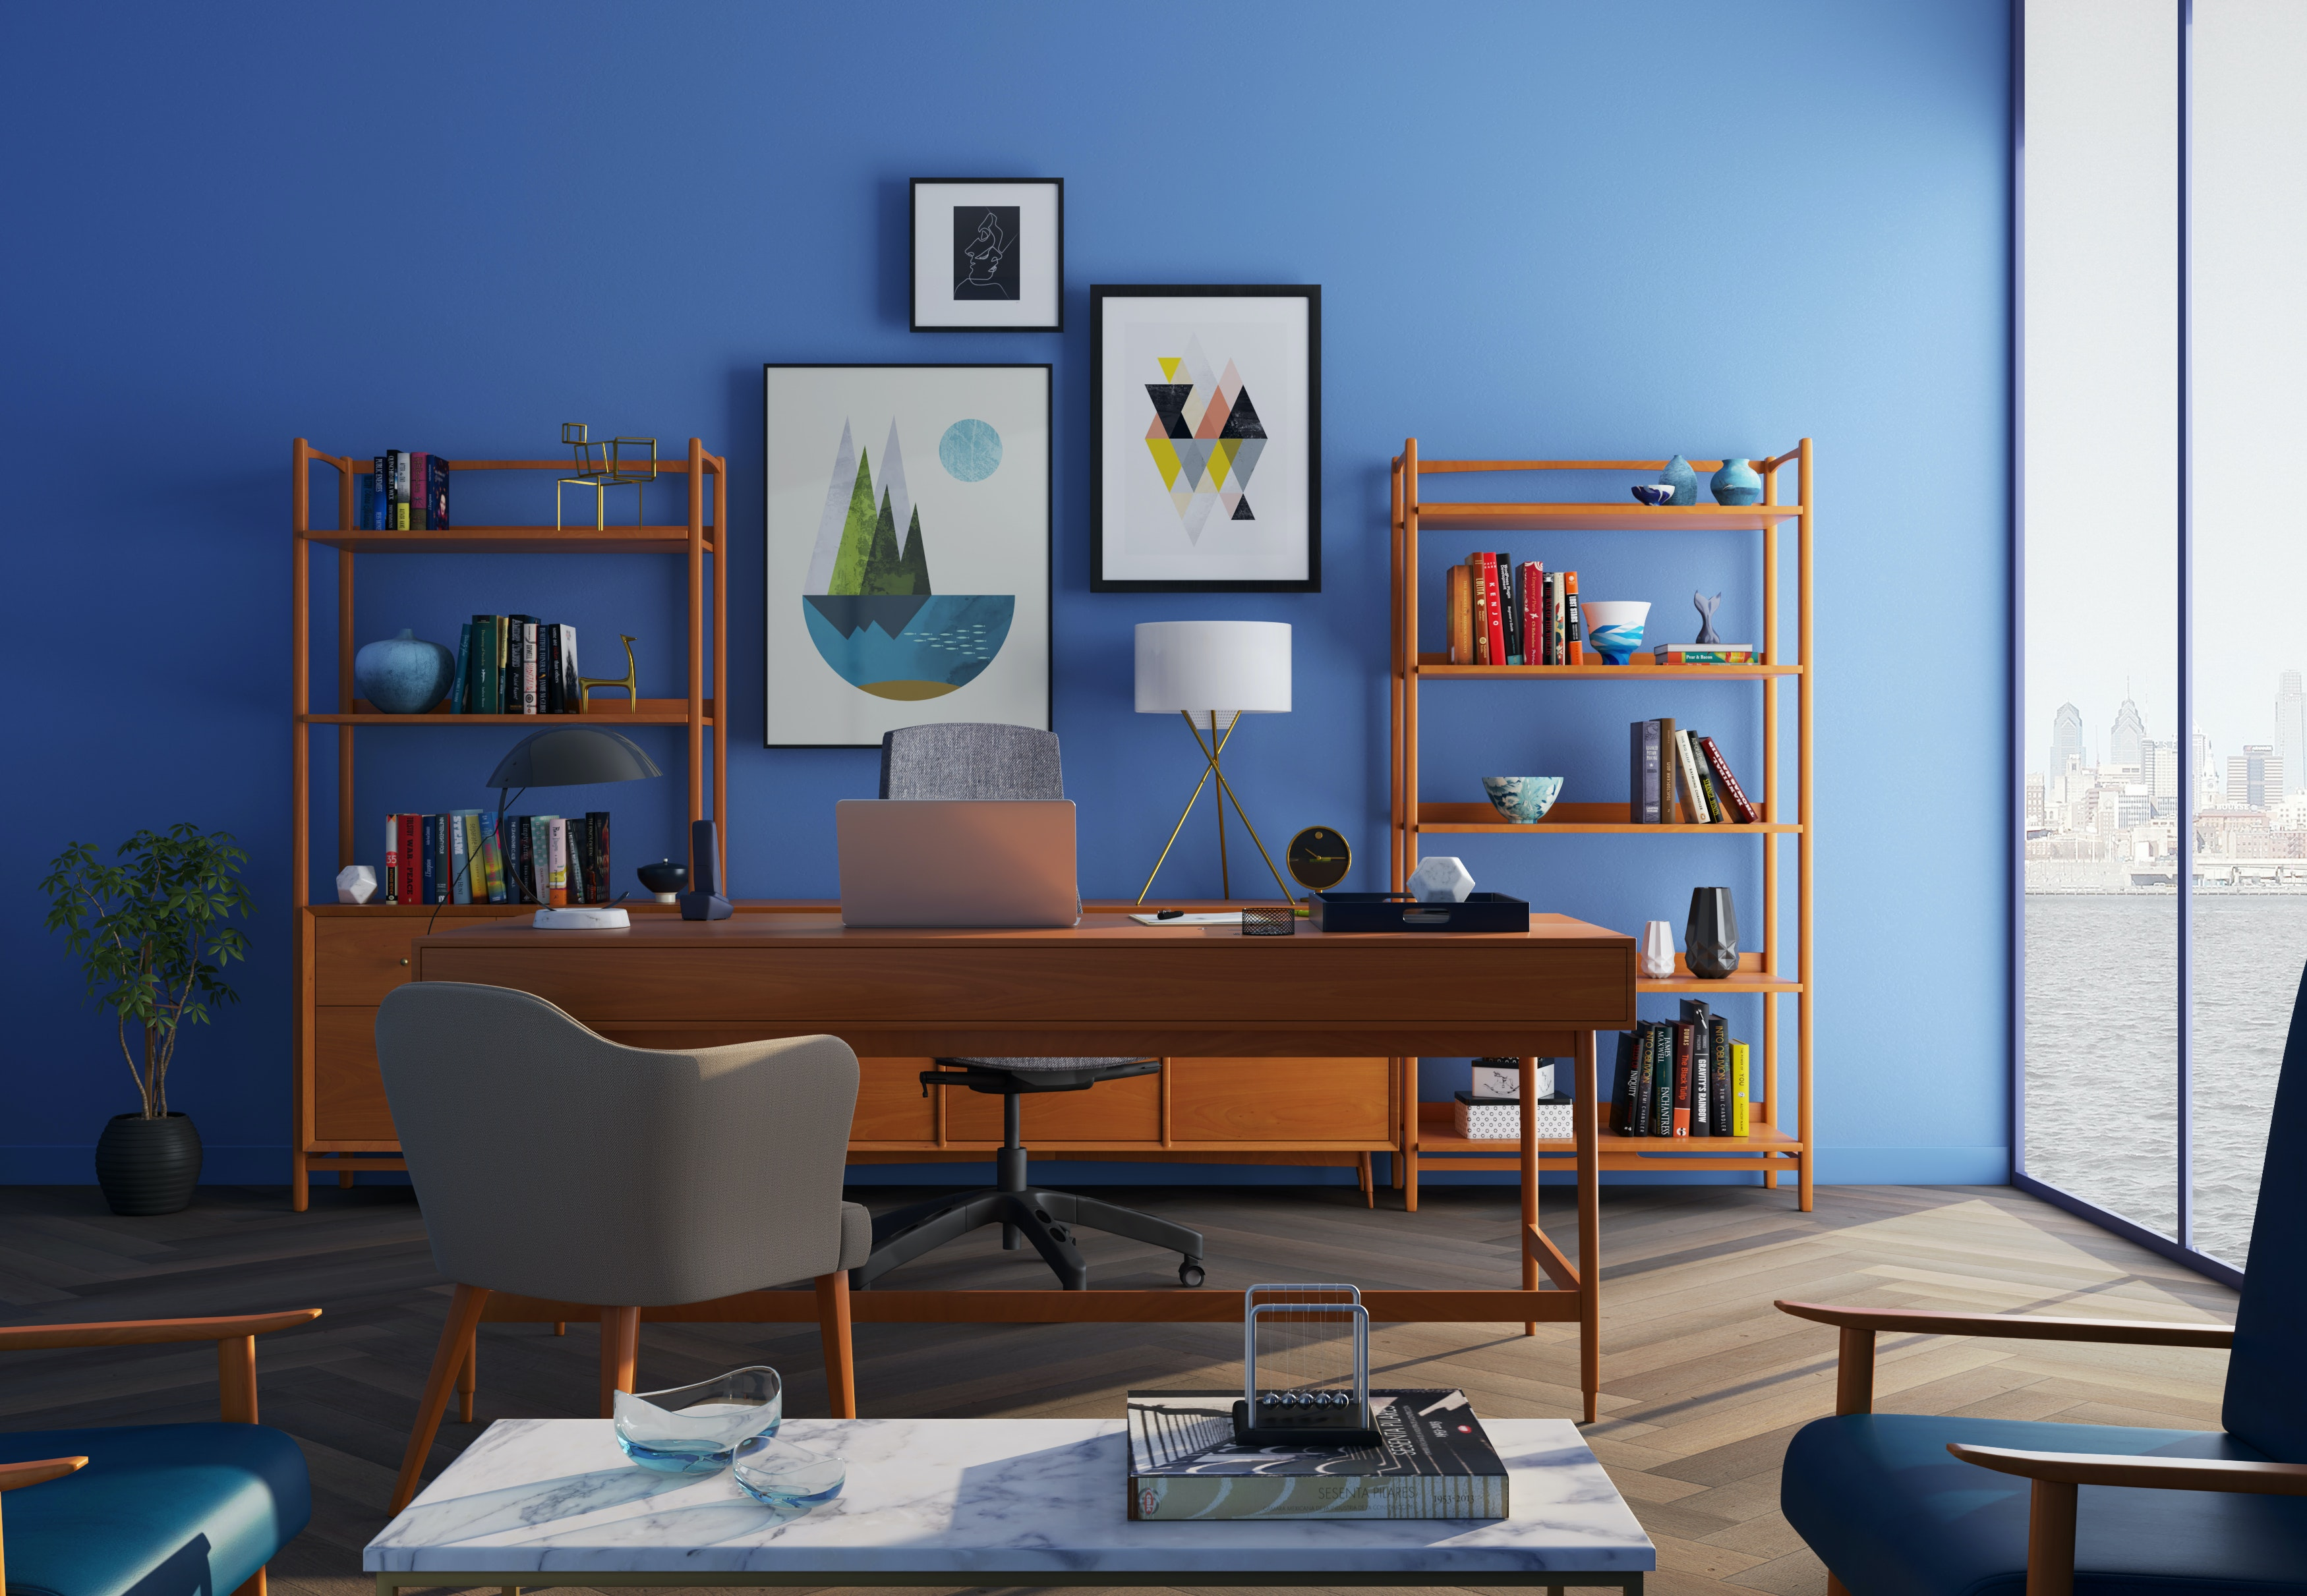 Related Searches: Interior Design Home Wall Room Living Room